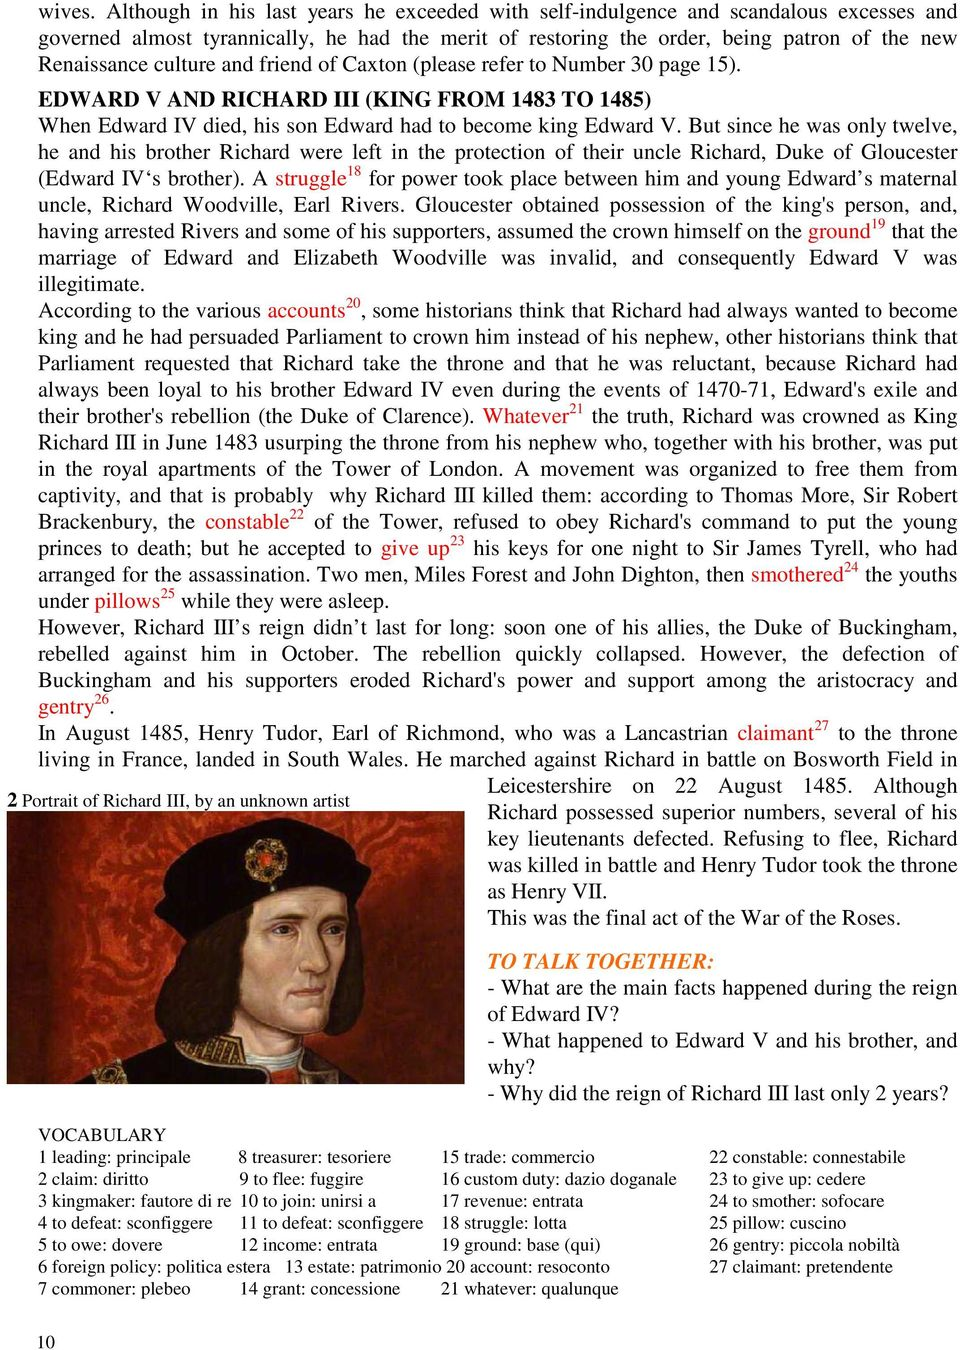 culture and friend of Caxton (please refer to Number 30 page 15). EDWARD V AND RICHARD III (KING FROM 1483 TO 1485) When Edward IV died, his son Edward had to become king Edward V.